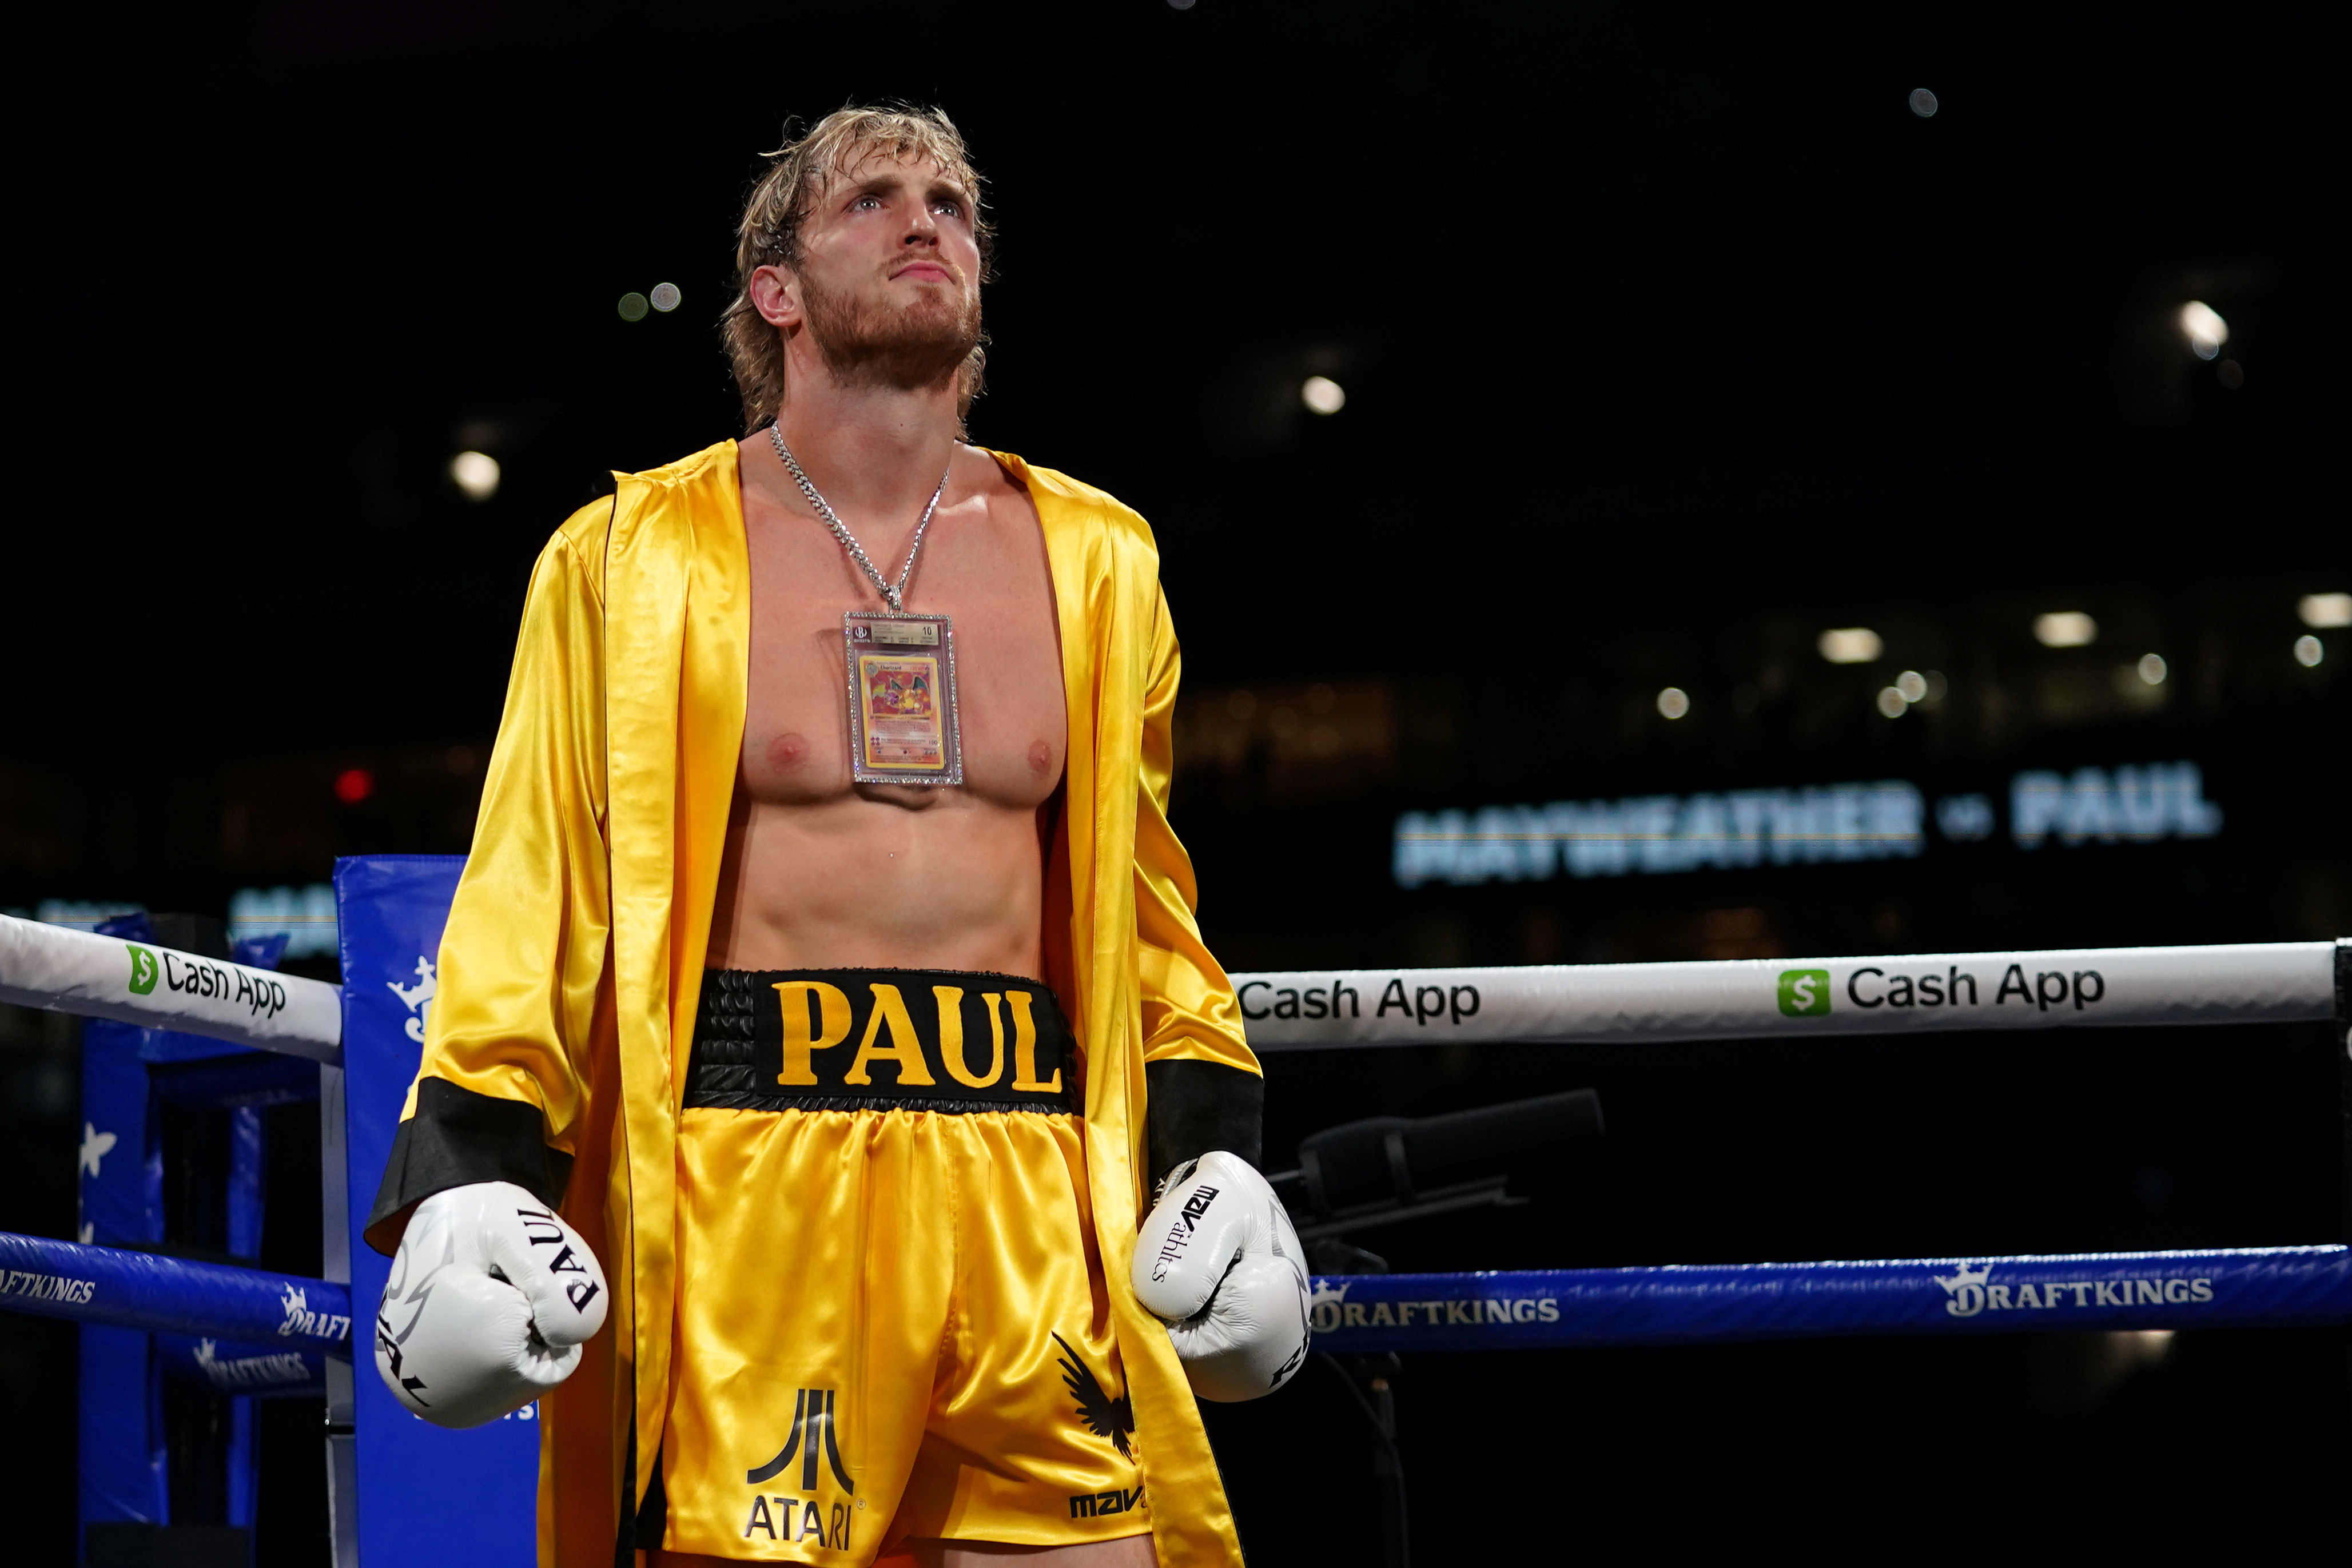 Jun 6, 2021; Miami, Florida, USA; Logan Paul (Yellow Trunks) stands in the ring prior to an exhibition boxing match against Floyd Mayweather Jr. (not pictured) at Hard Rock Stadium. Mandatory Credit: Jasen Vinlove-USA TODAY Sports/File Photo